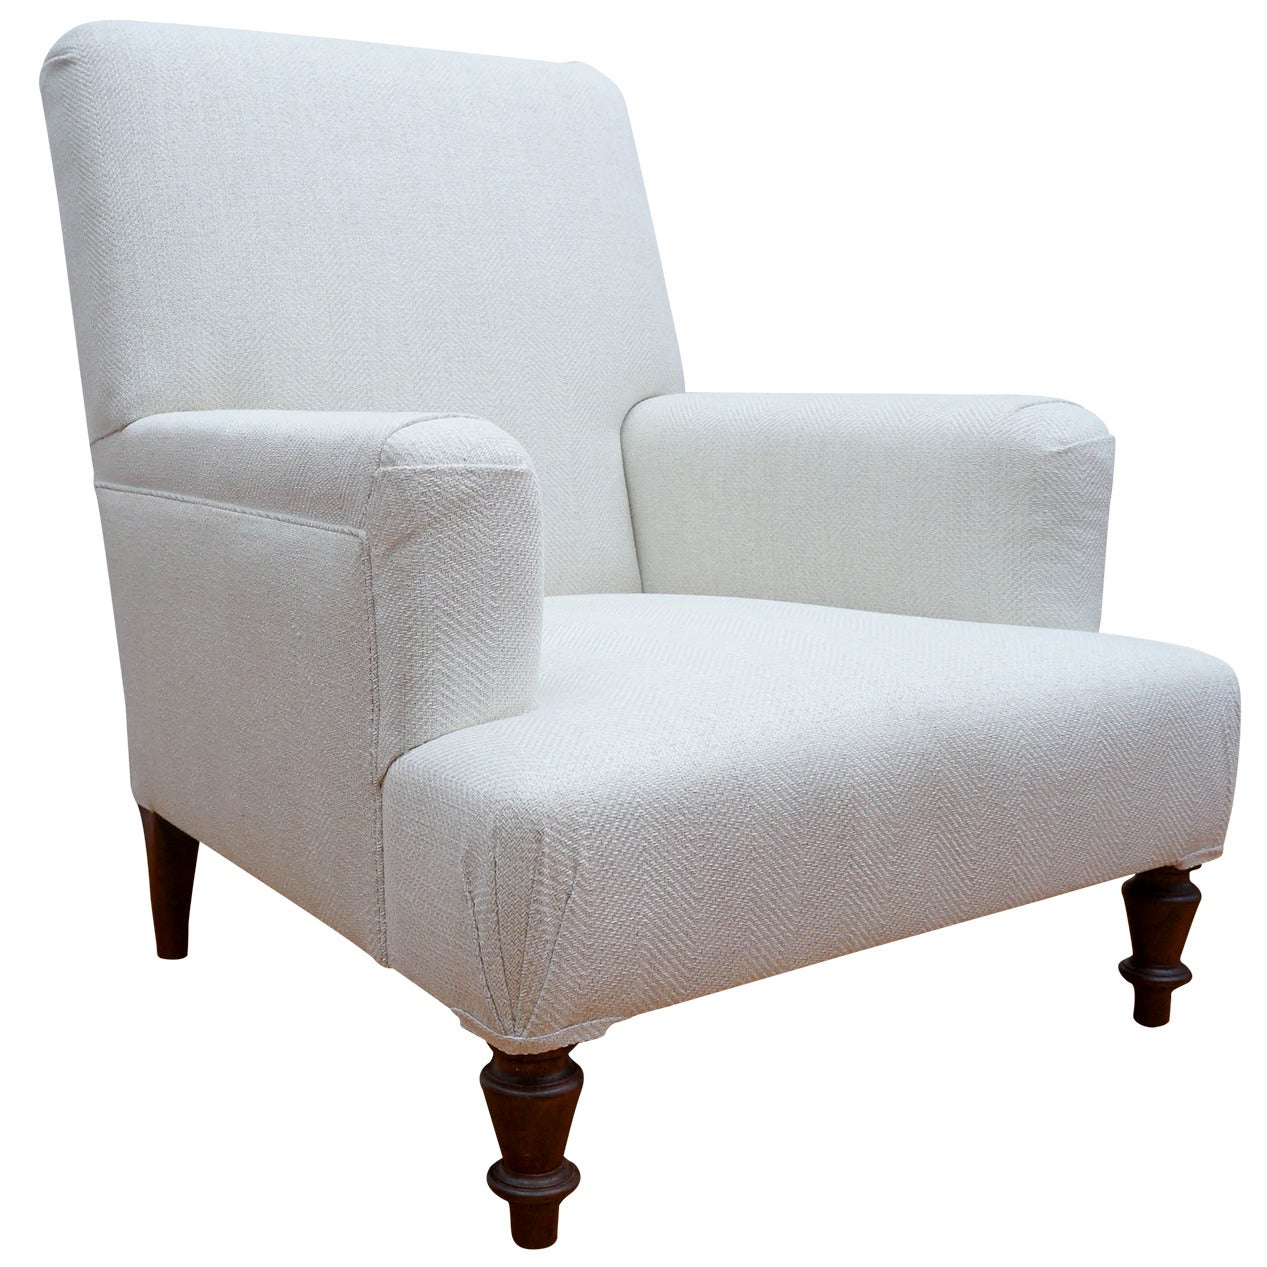 """Custom """"Provence"""" Upholstered Club Chair For Sale At 1stdibs"""